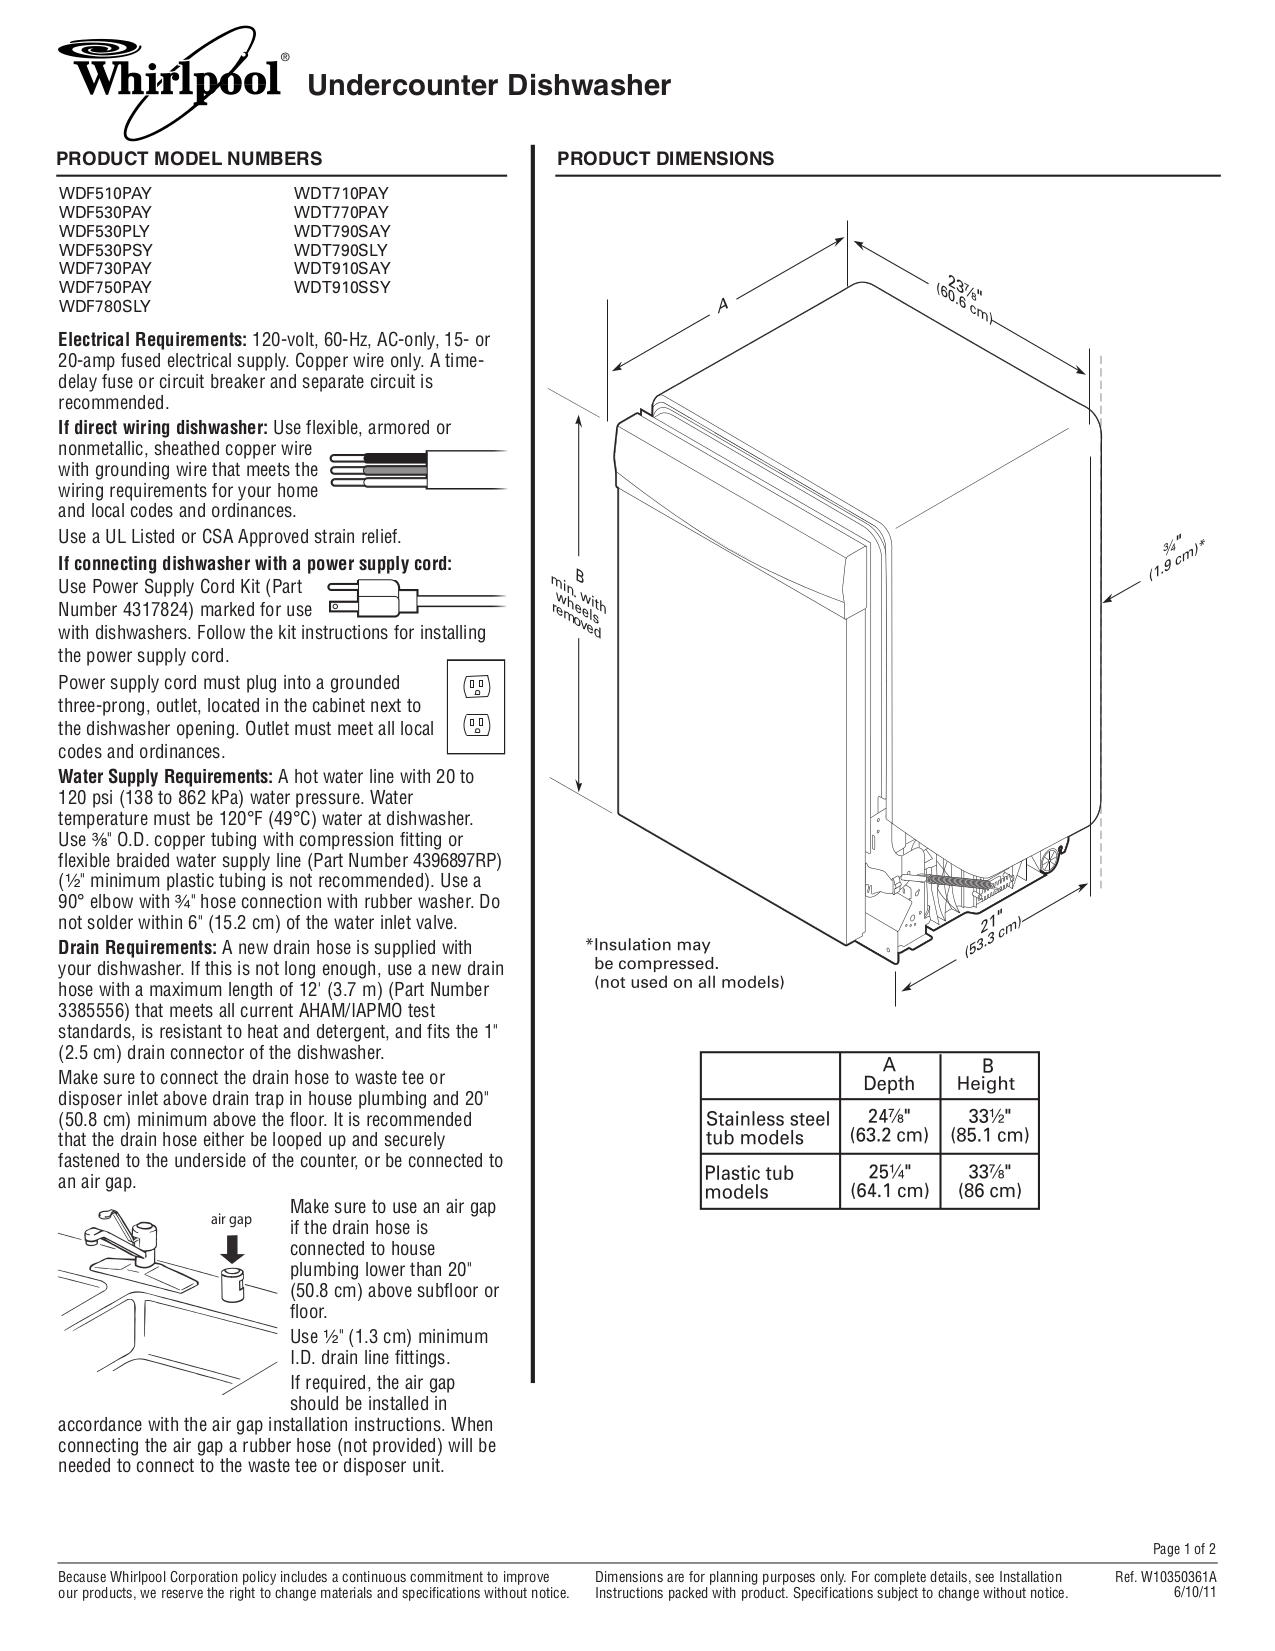 pdf for Whirlpool Dishwasher WDT770PAYM manual